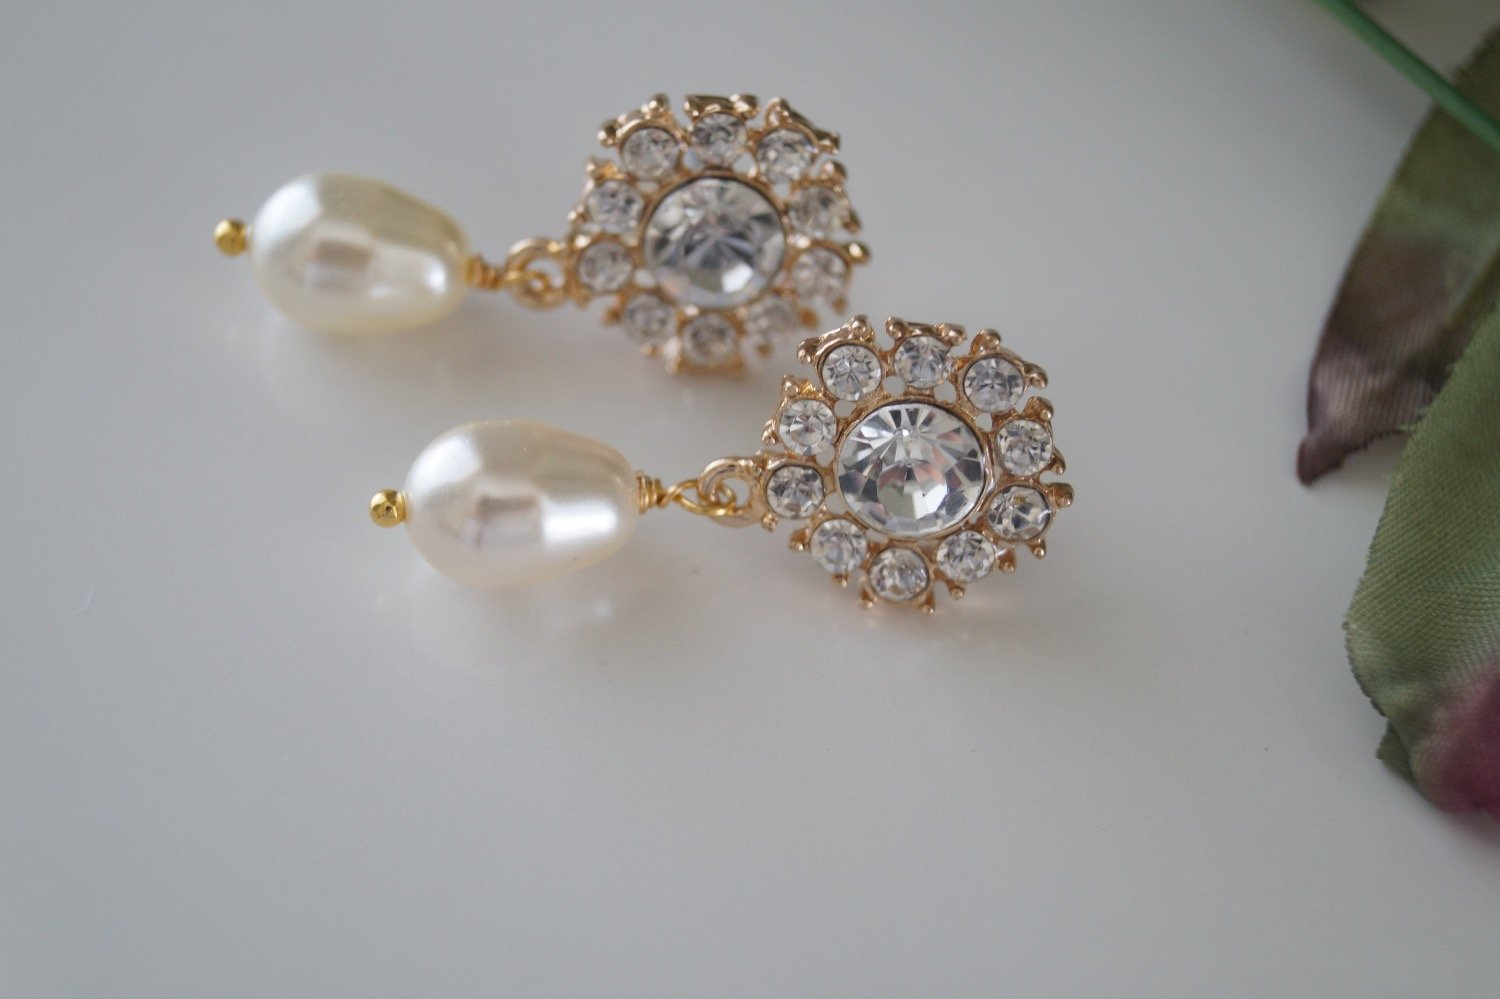 Gold Crystal Bridal Earrings Swarovski Pearl Drop Earrings - Clairesbridal - 5